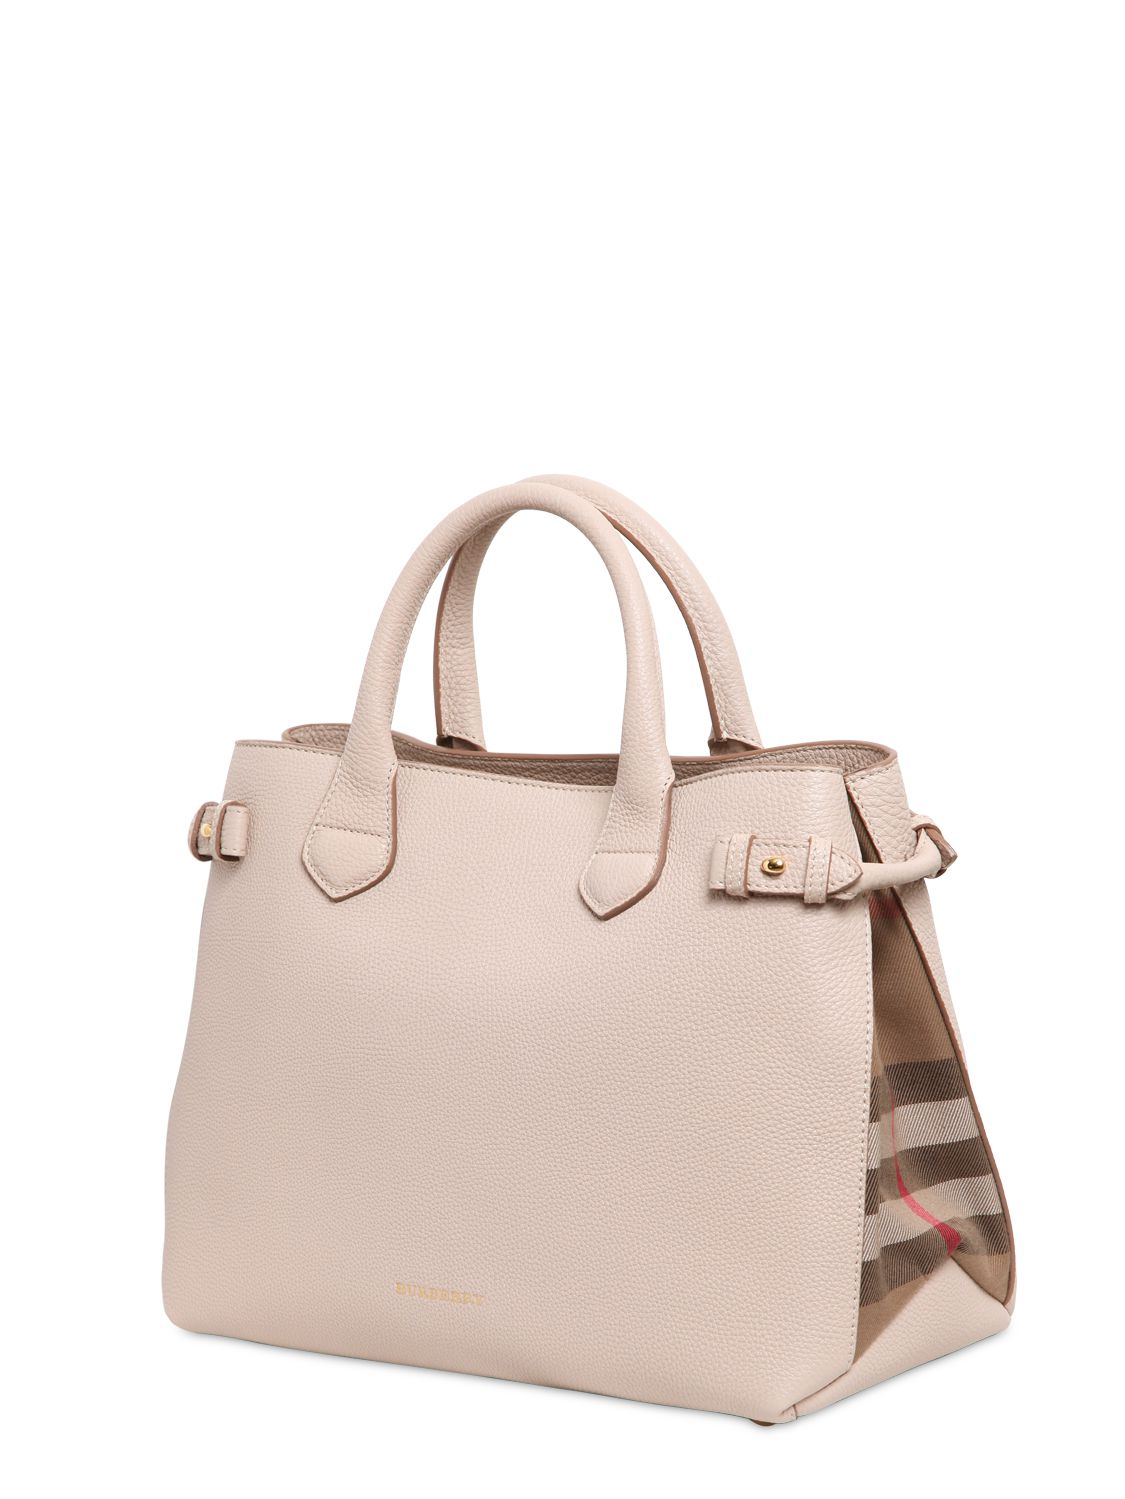 e21ad003558b Burberry Banner Medium Leather Shoulder Bag   Burberry medium banner  leather bag with check in natural